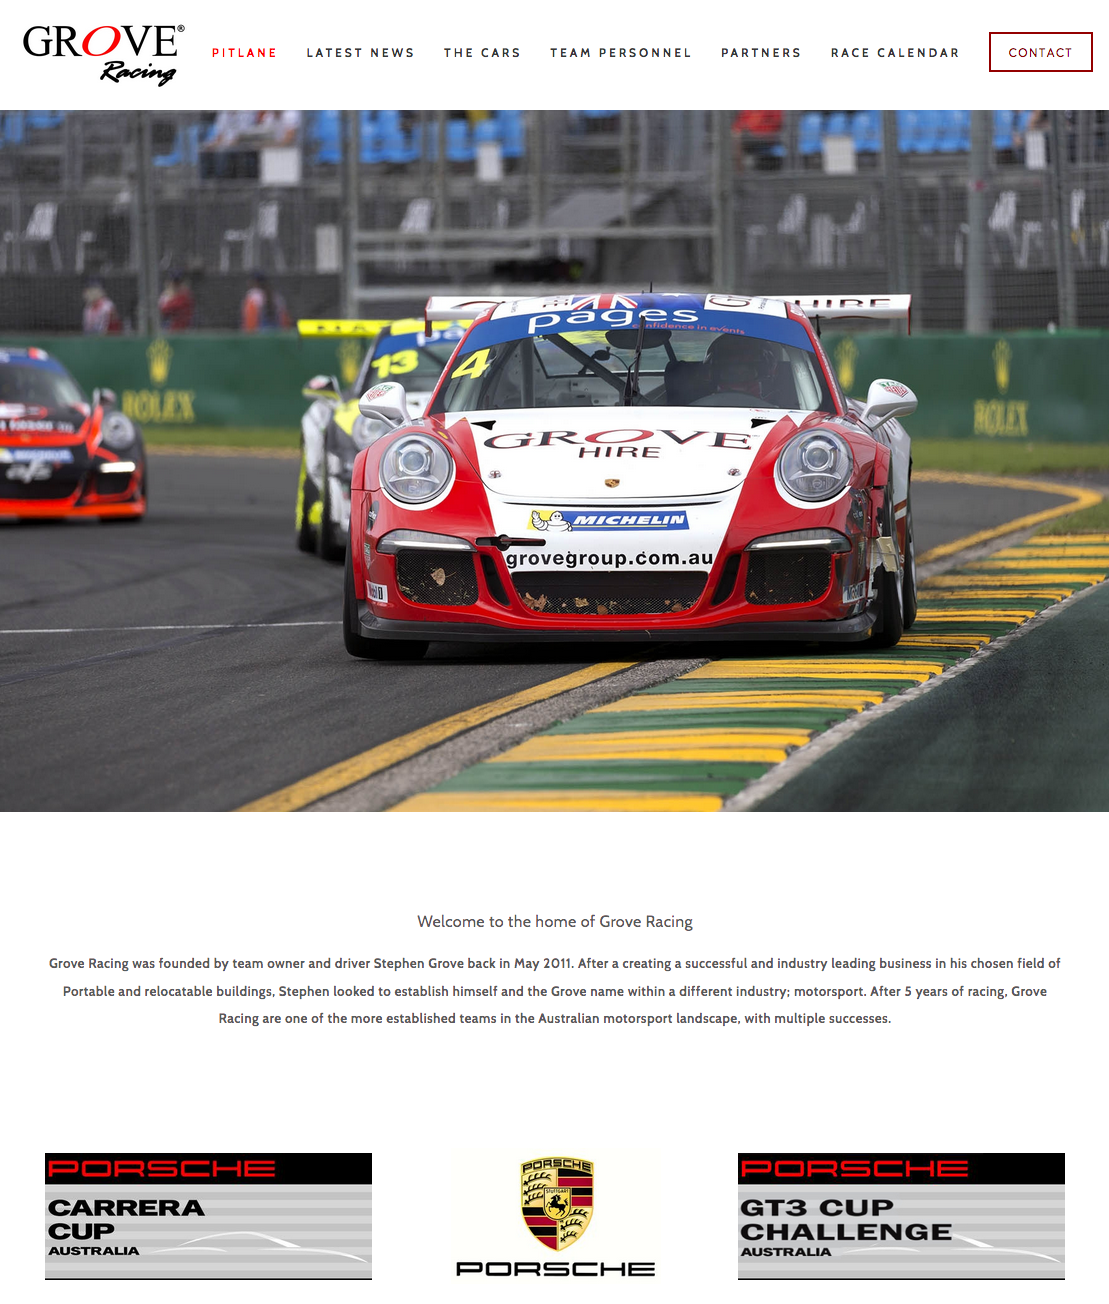 Porsche championship winning team Grove Racing's website designed and installed by PLM